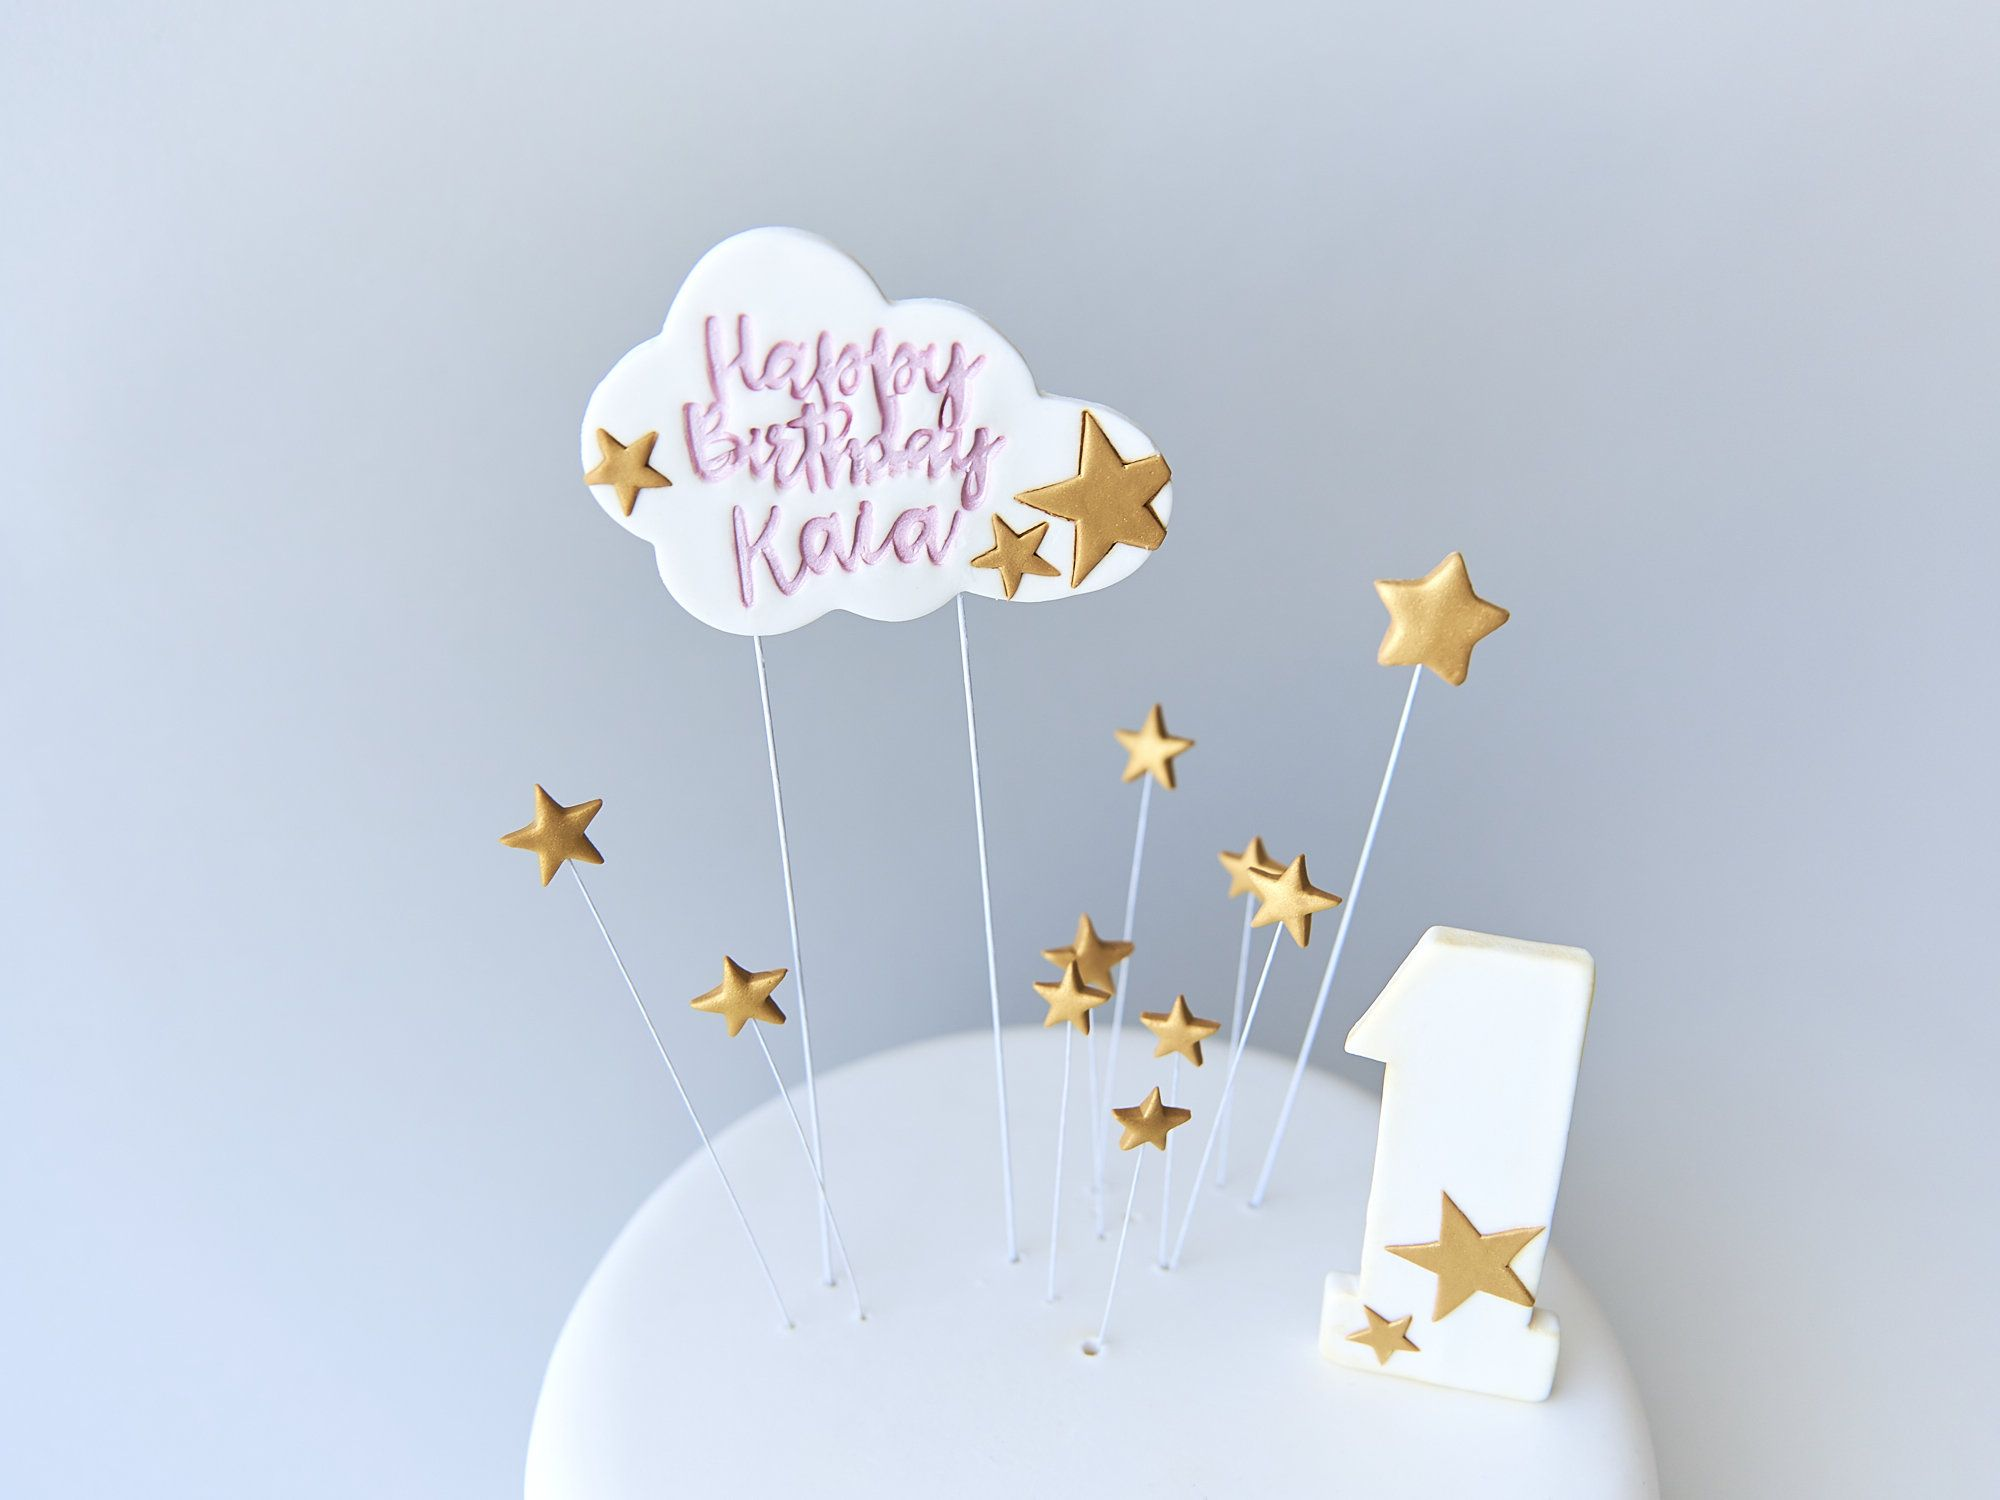 Remarkable Fondant Cloud With Happy Birthday Name Letters Golden Stars Funny Birthday Cards Online Inifofree Goldxyz